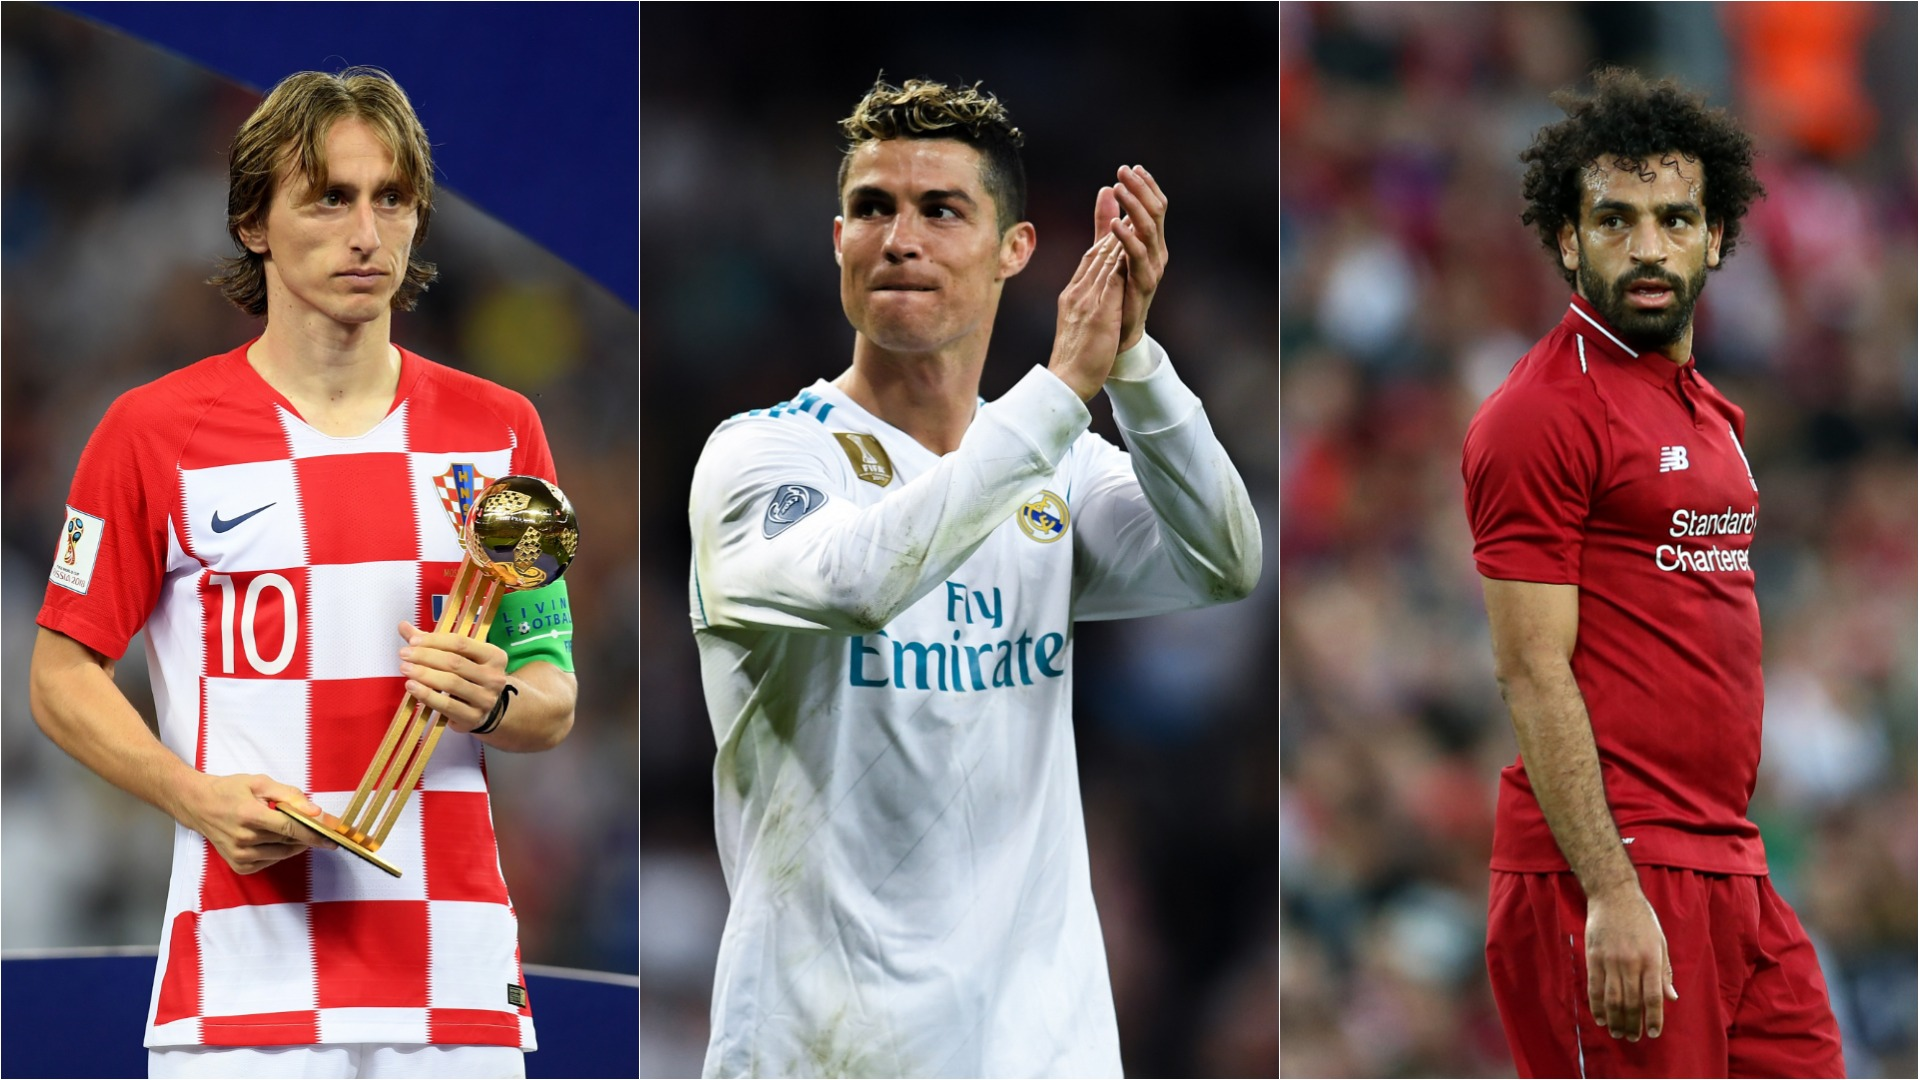 •Ronaldo, Modric, Salah unveiled in FIFA shortlist for World Player of the Year trophy.